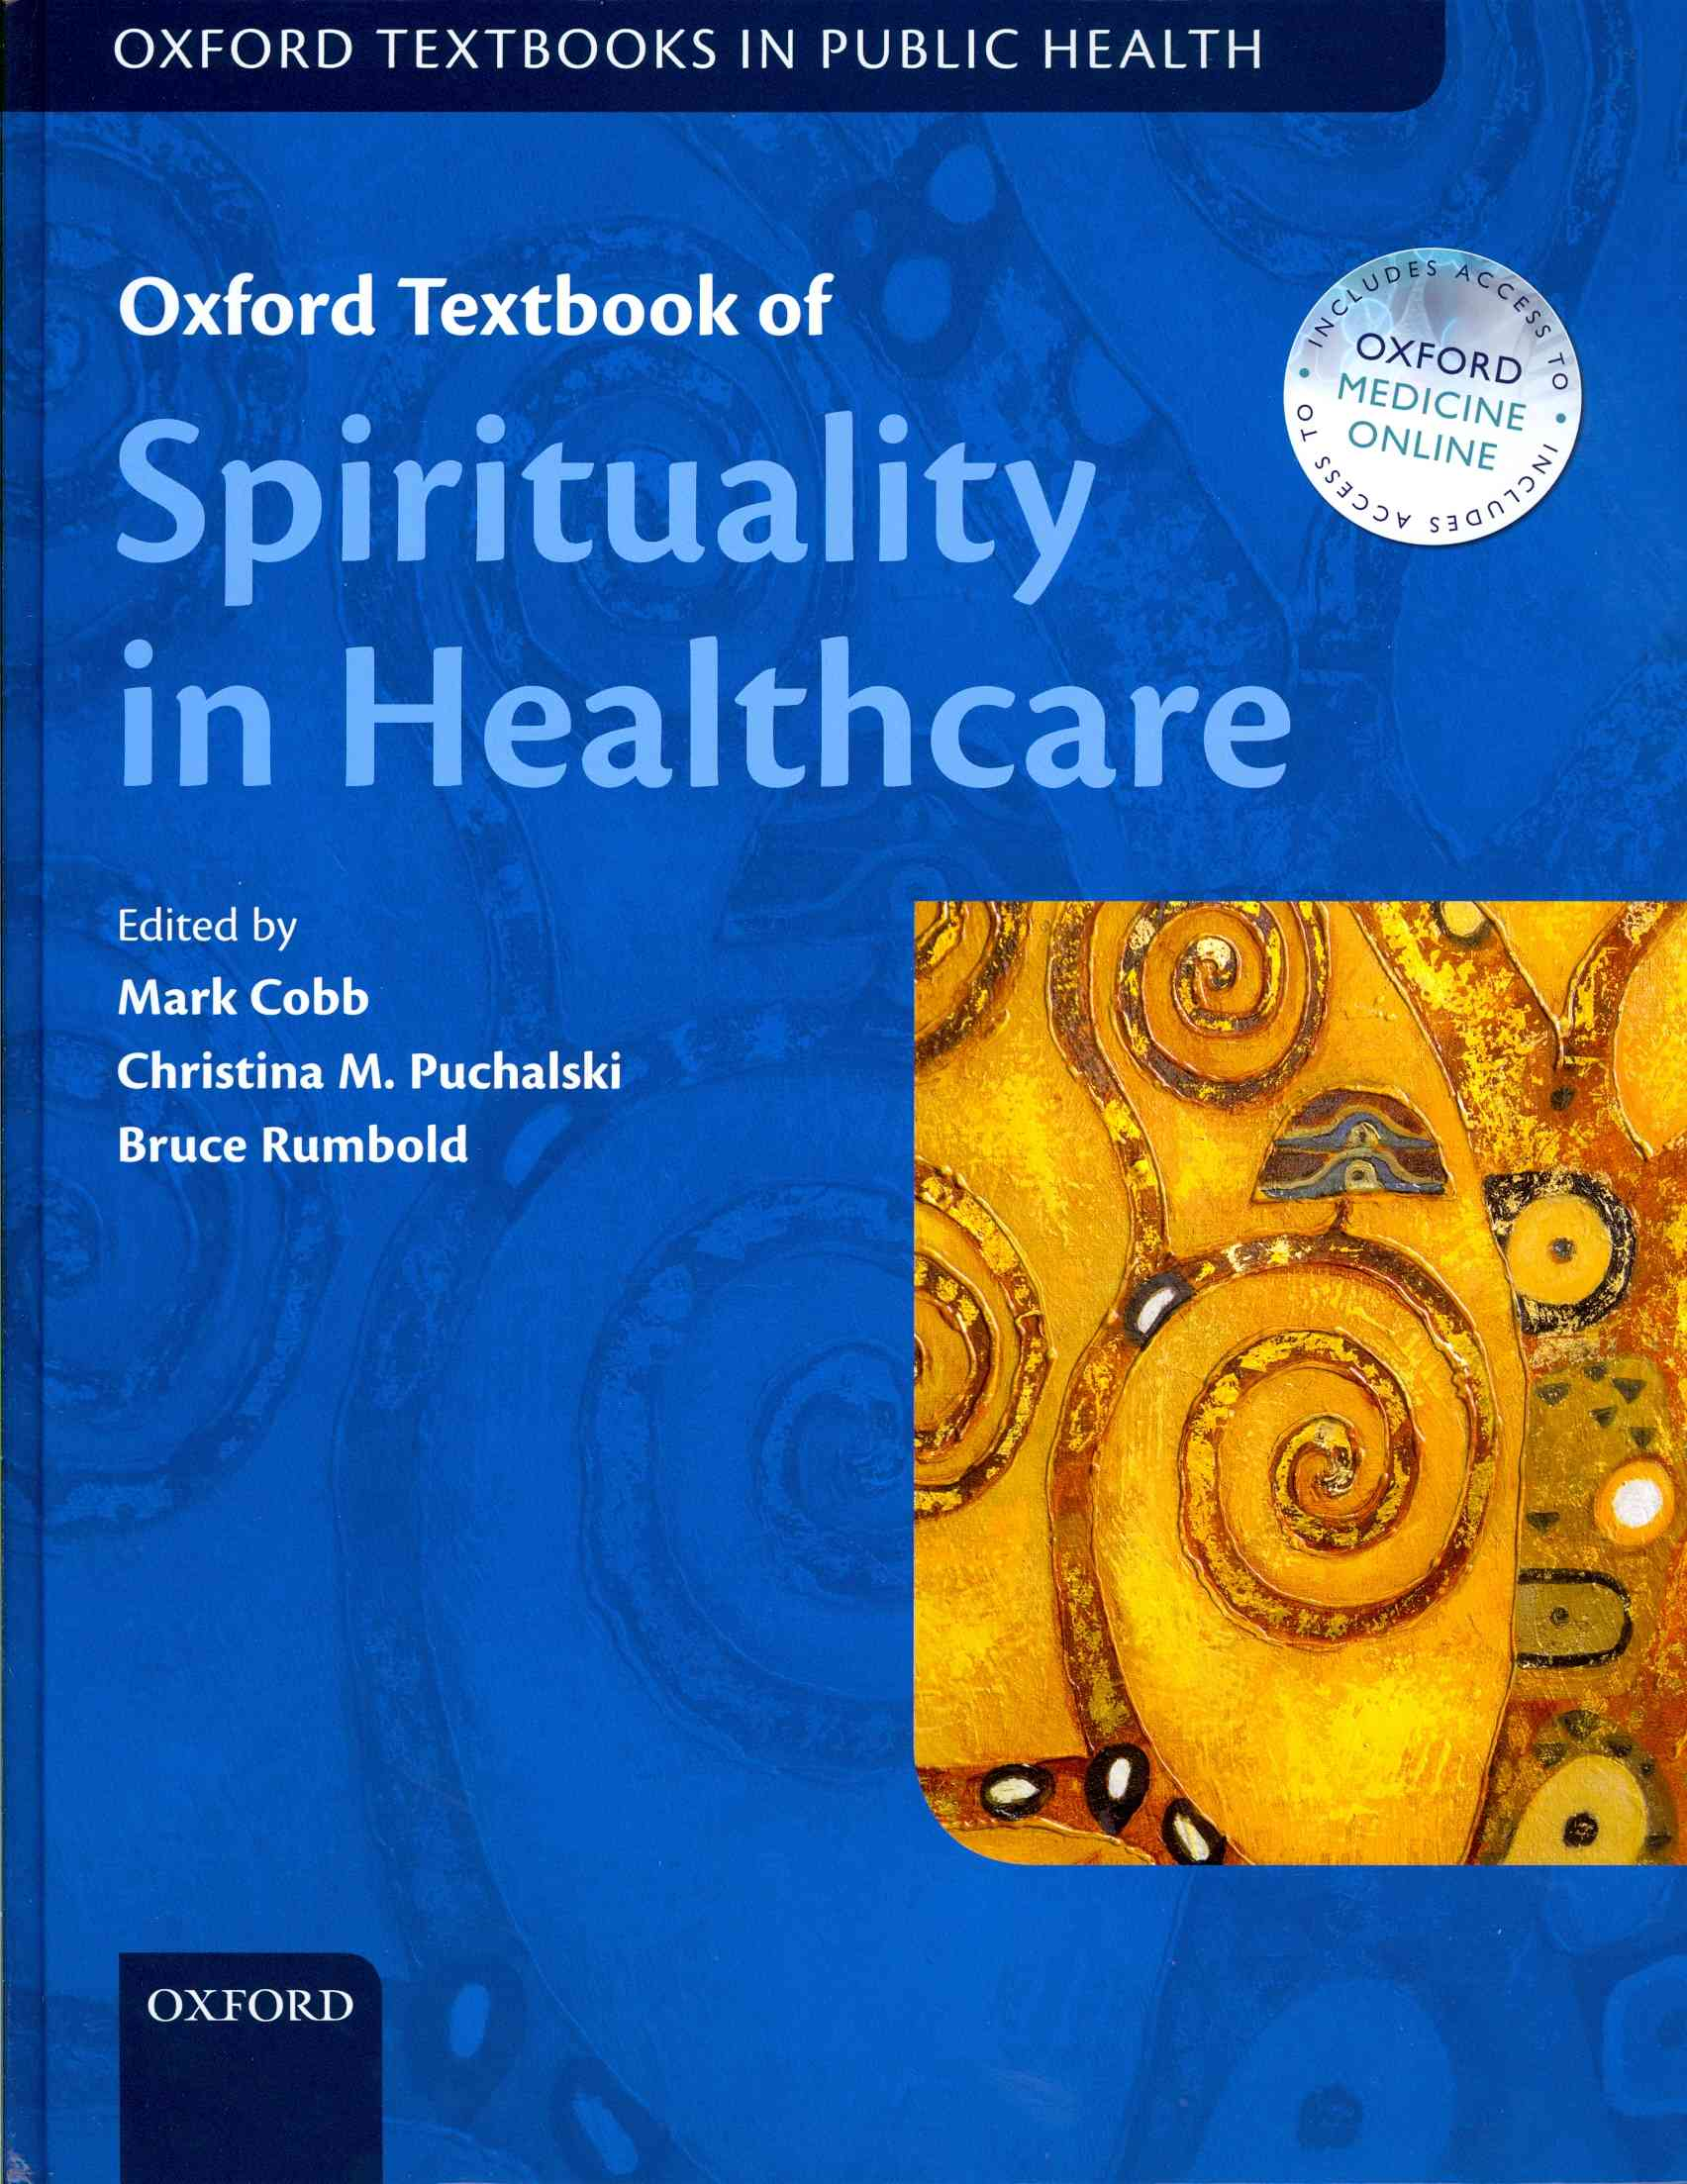 Oxford Textbook of Spirituality in Healthcare By Cobb, Mark R./ Puchlaski, Christina M/ Rumbold, Bruce